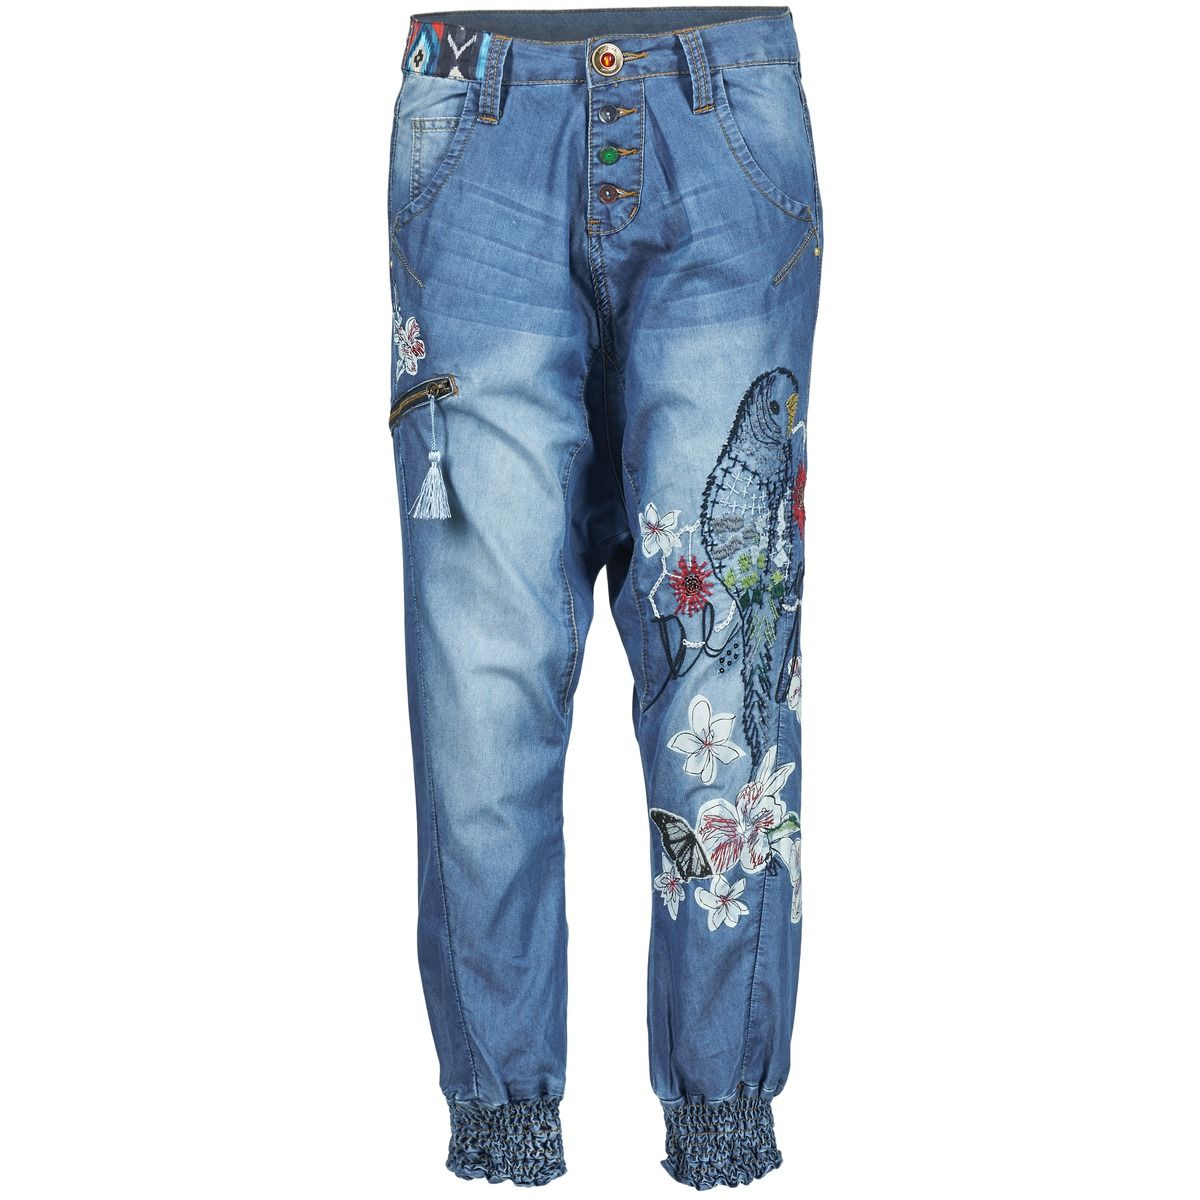 Jeans sarouel homme g star